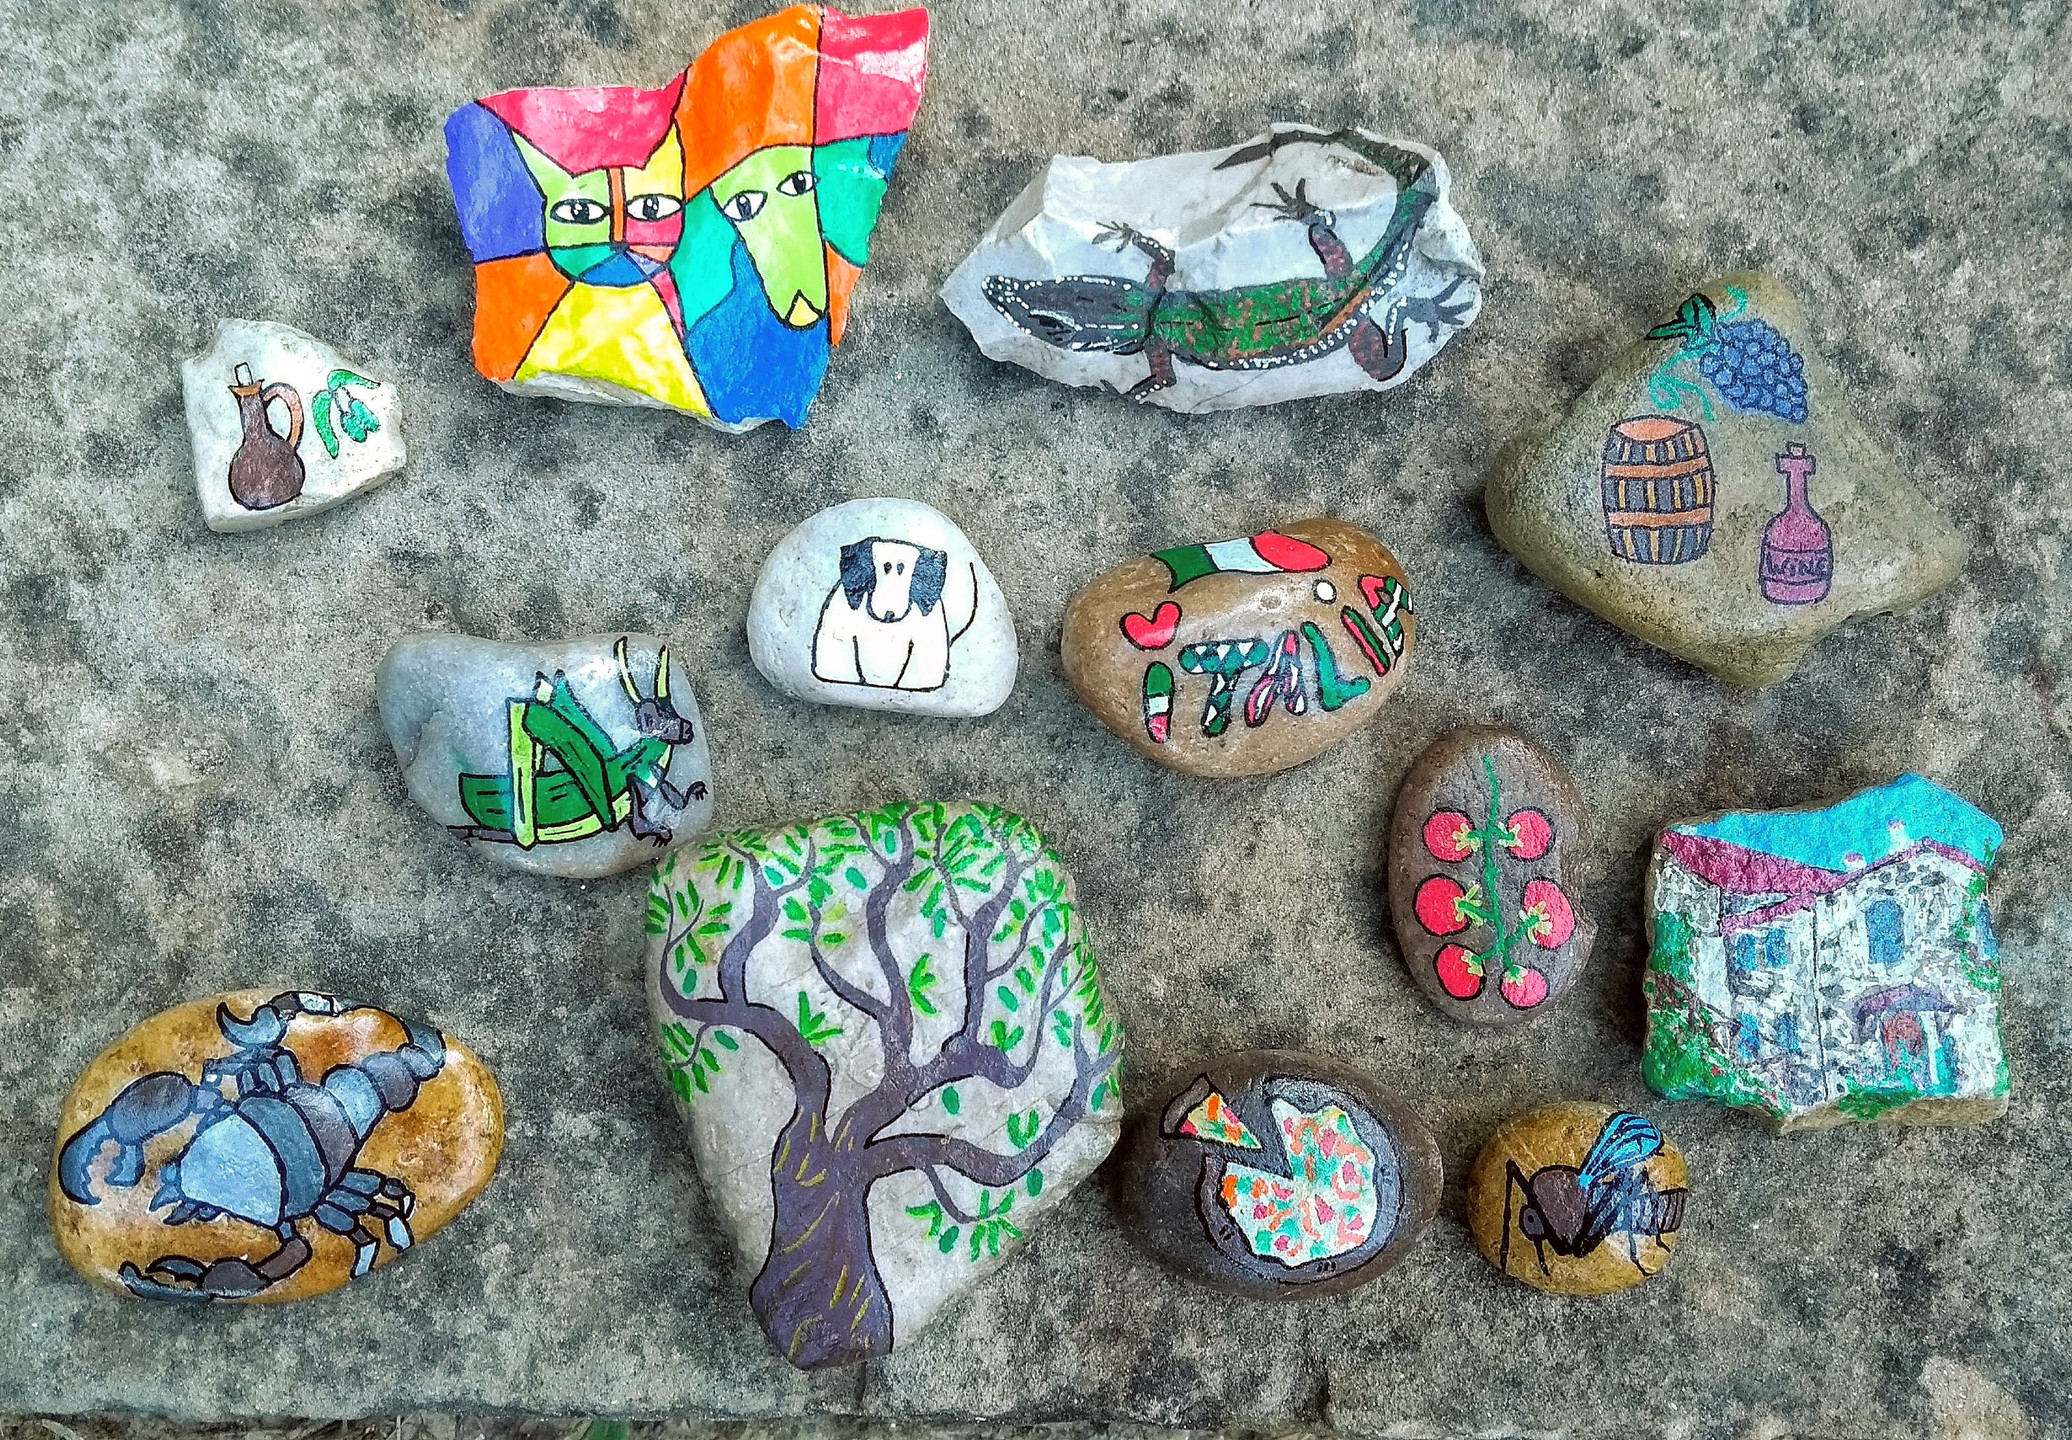 Hedy's lovely stone artwork